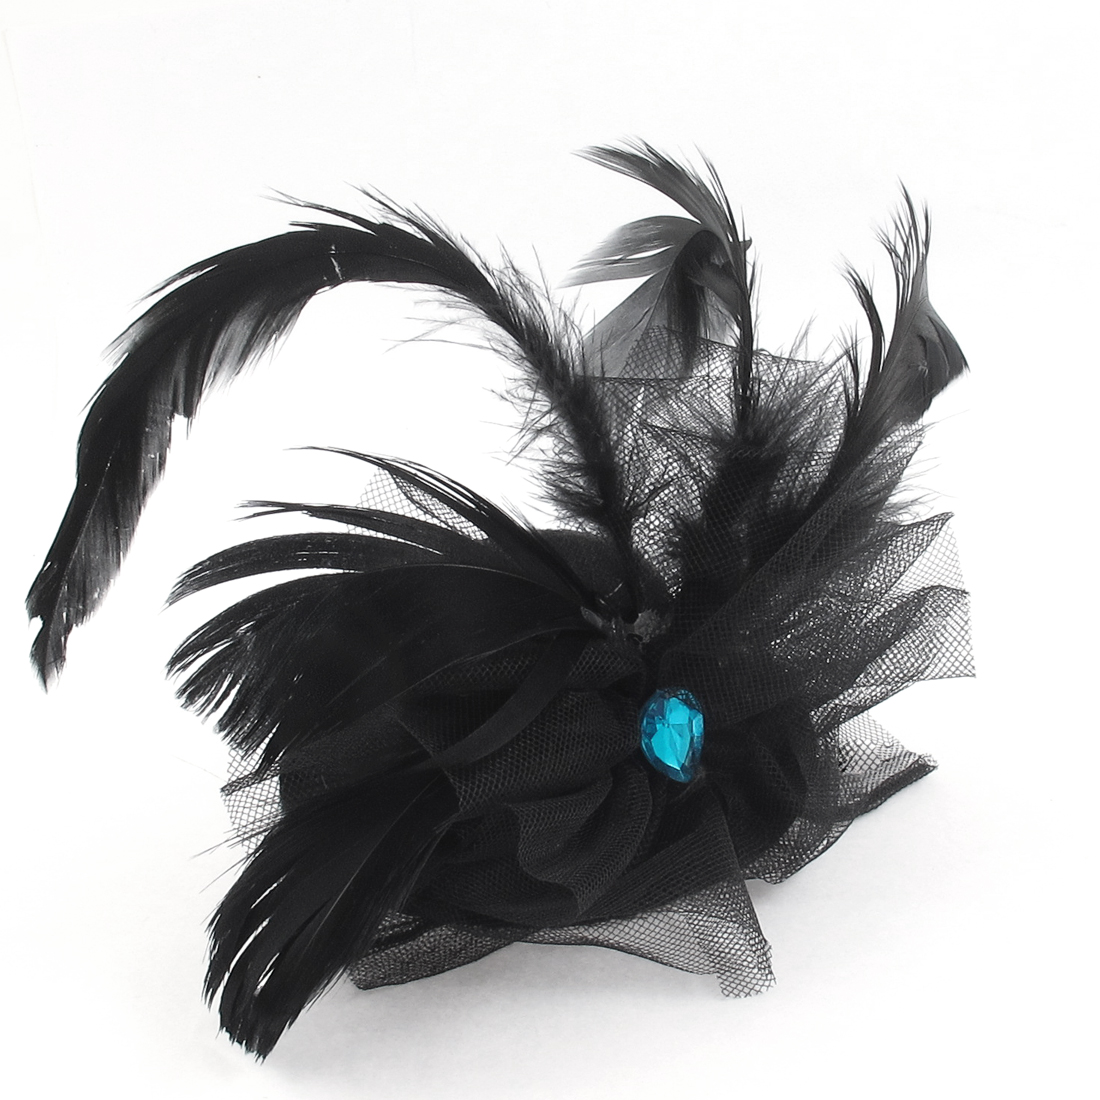 Women Rhinestone Feather Decor Fascinator Party Bow Hair Clip Mini Top Hat Black